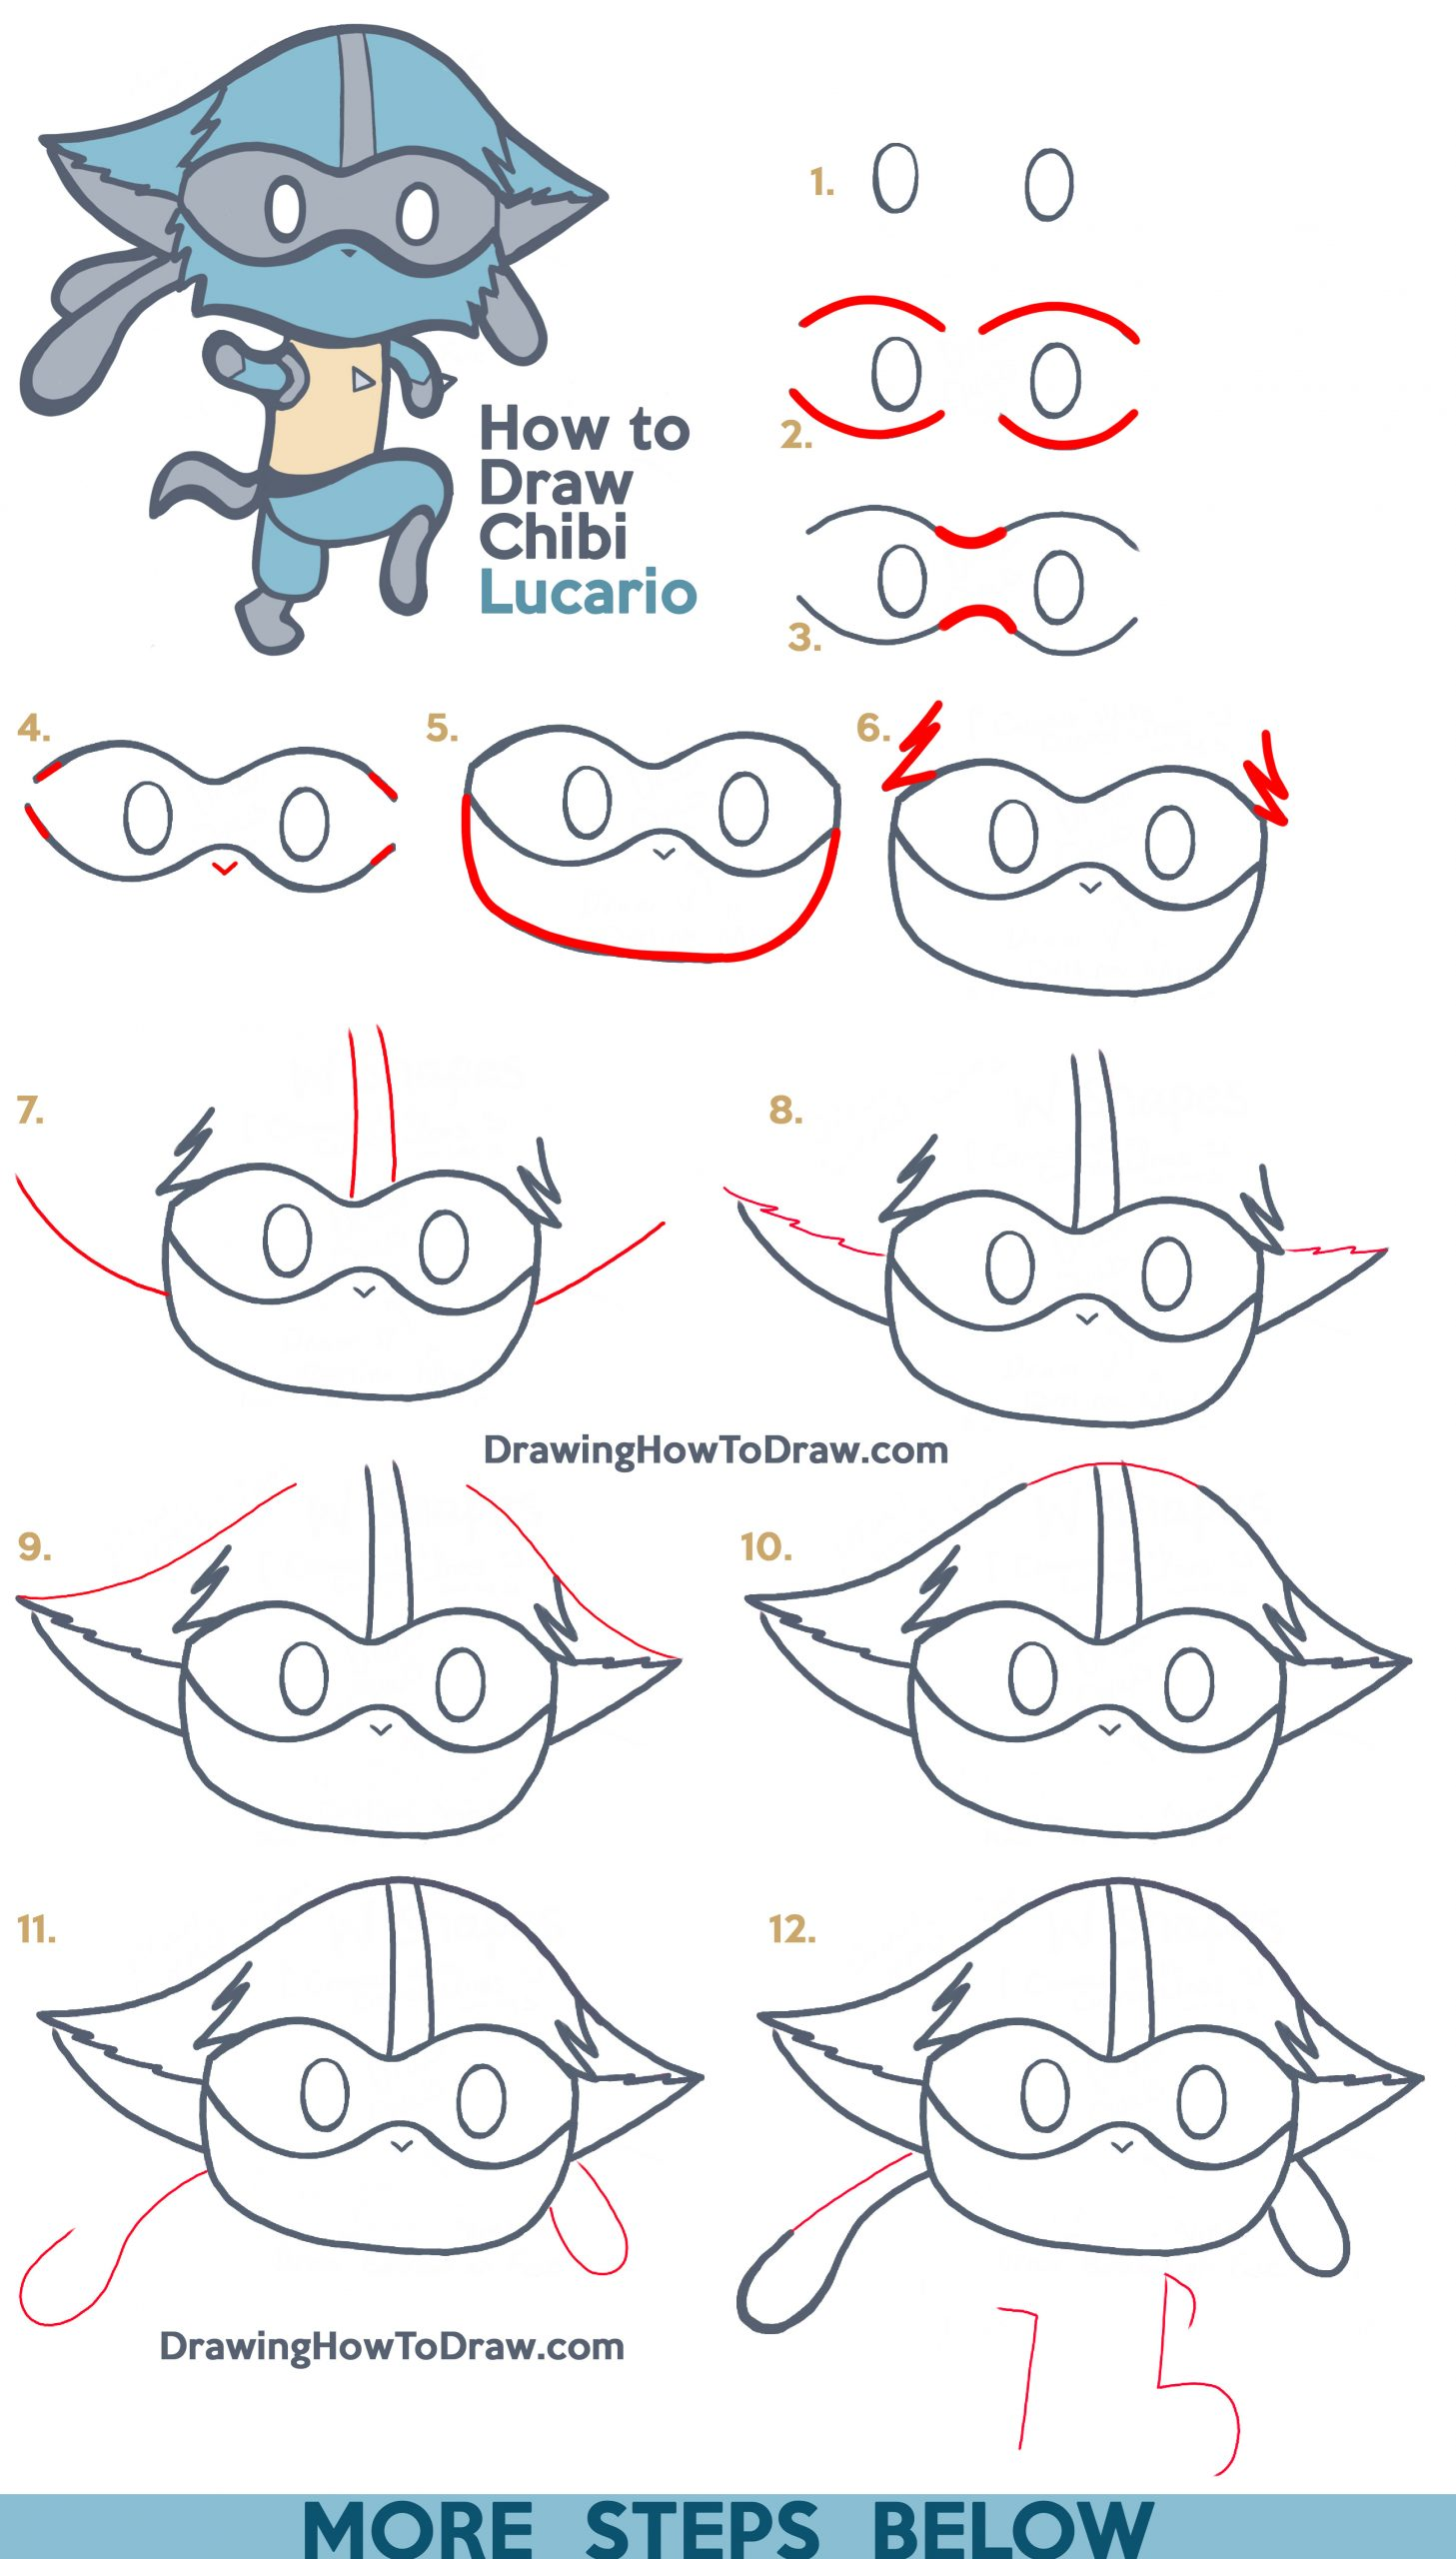 How to Draw a Cute Lucario (Kawaii / Chibi) from Pokemon with Easy Step by Step Drawing Tutorial